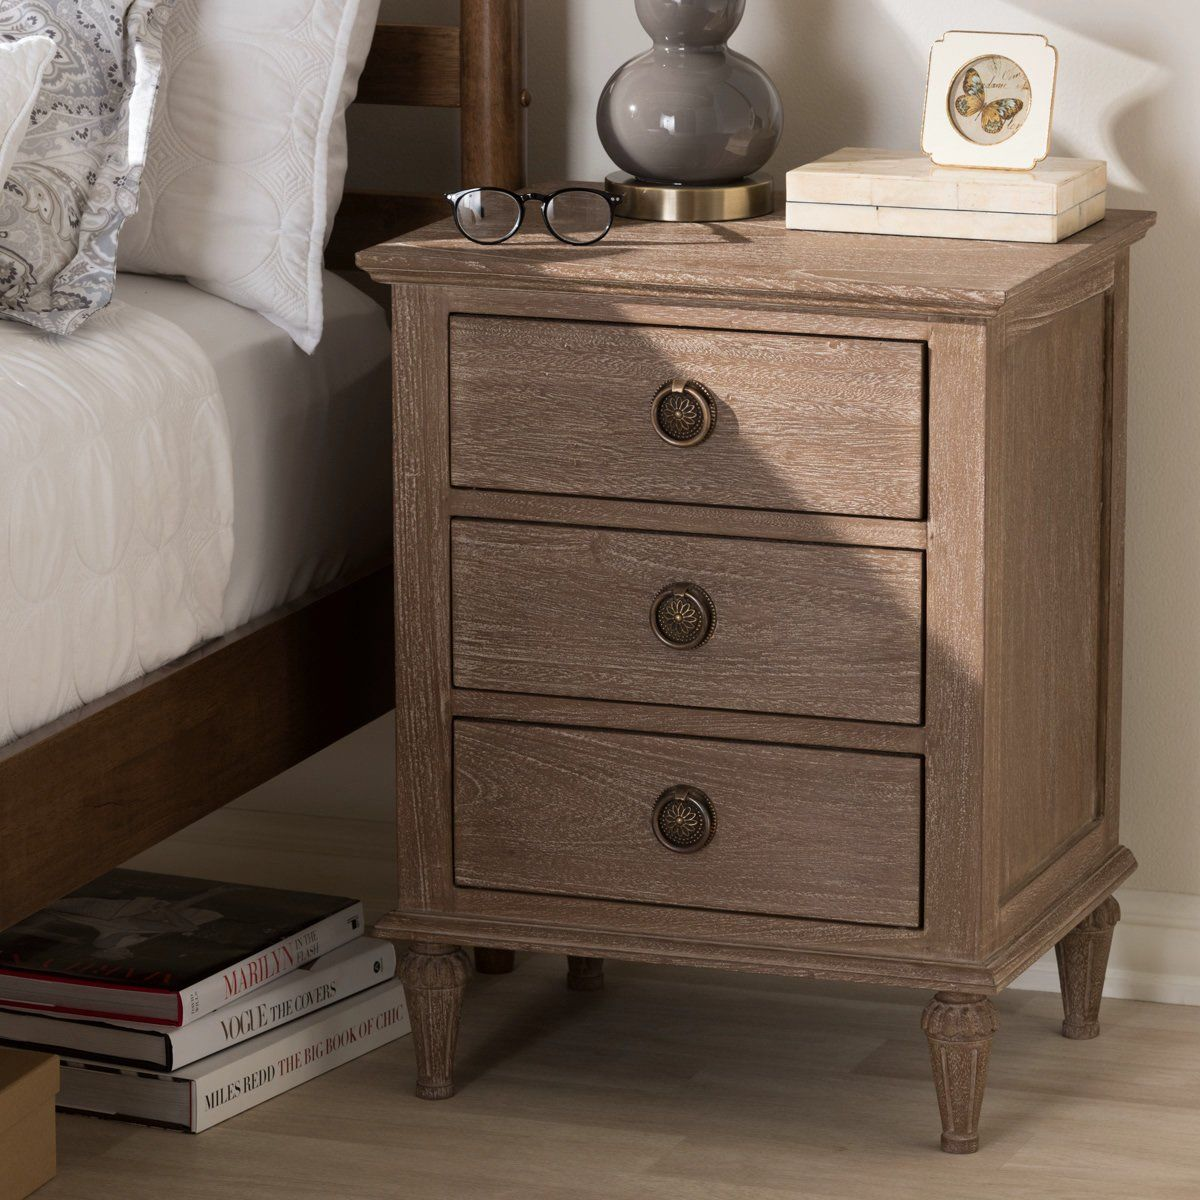 Baxton Studio Venezia Rustic Grey Wash Wood 3 Drawer Nightstand